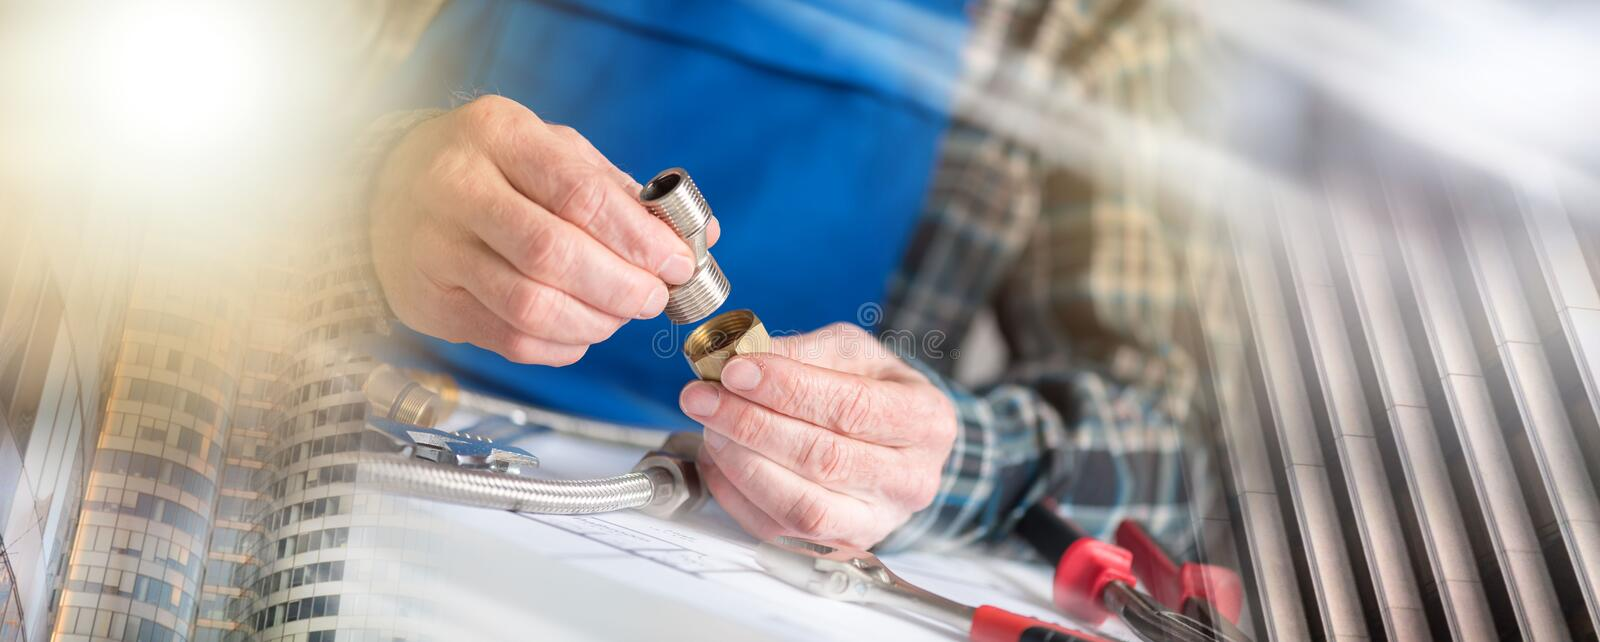 Plumber using plumbing fittings, light effect; multiple exposure royalty free stock images